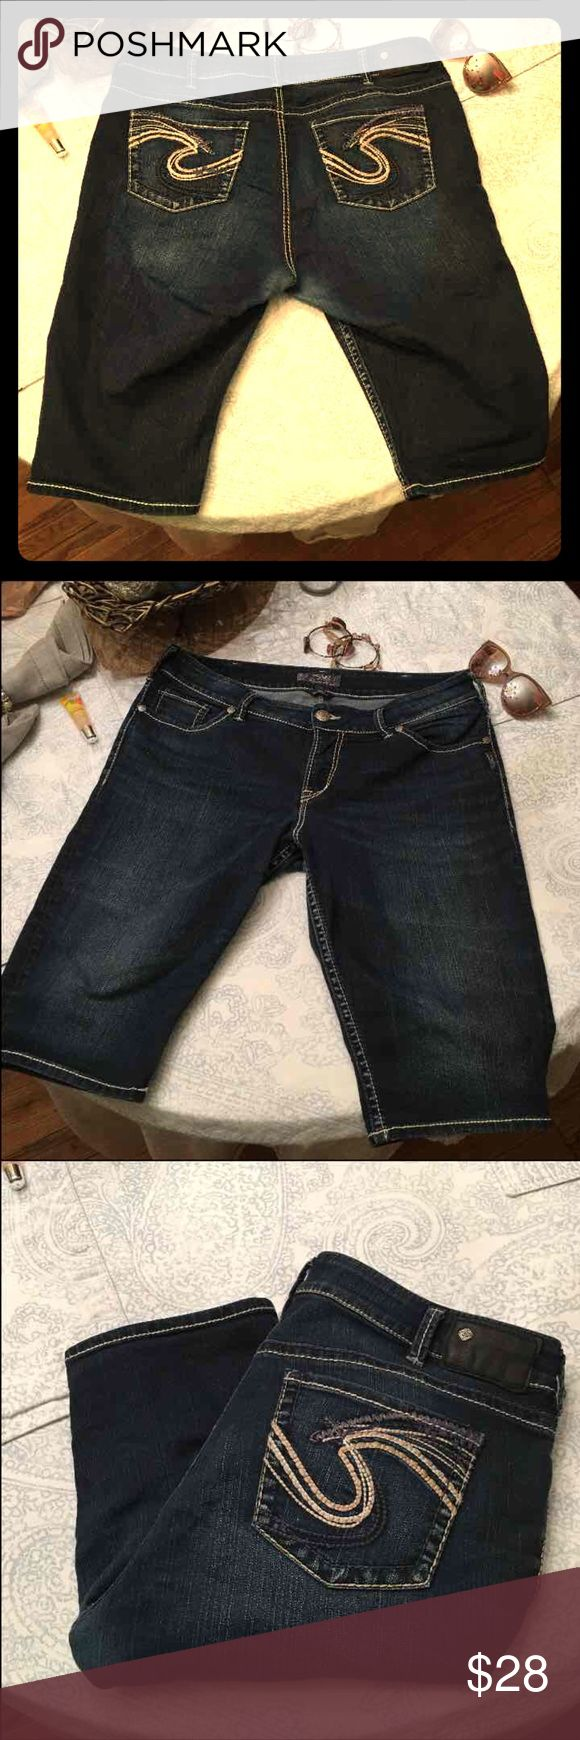 "Silver Jean Shorts SZ 16 Women's These are women's size 16 Jean Shorts. Stretchy jeans. Waist measures 19"" when laying flat.   Happy to bundle :)  Lots of Victoria Secret, Pink, Nike, Under Armour, Lululemon, Patagonia, Miss Me, and other Buckle items to list. Follow me to check out the great deals. I'm always happy to bundle. Silver Jeans Shorts Jean Shorts"